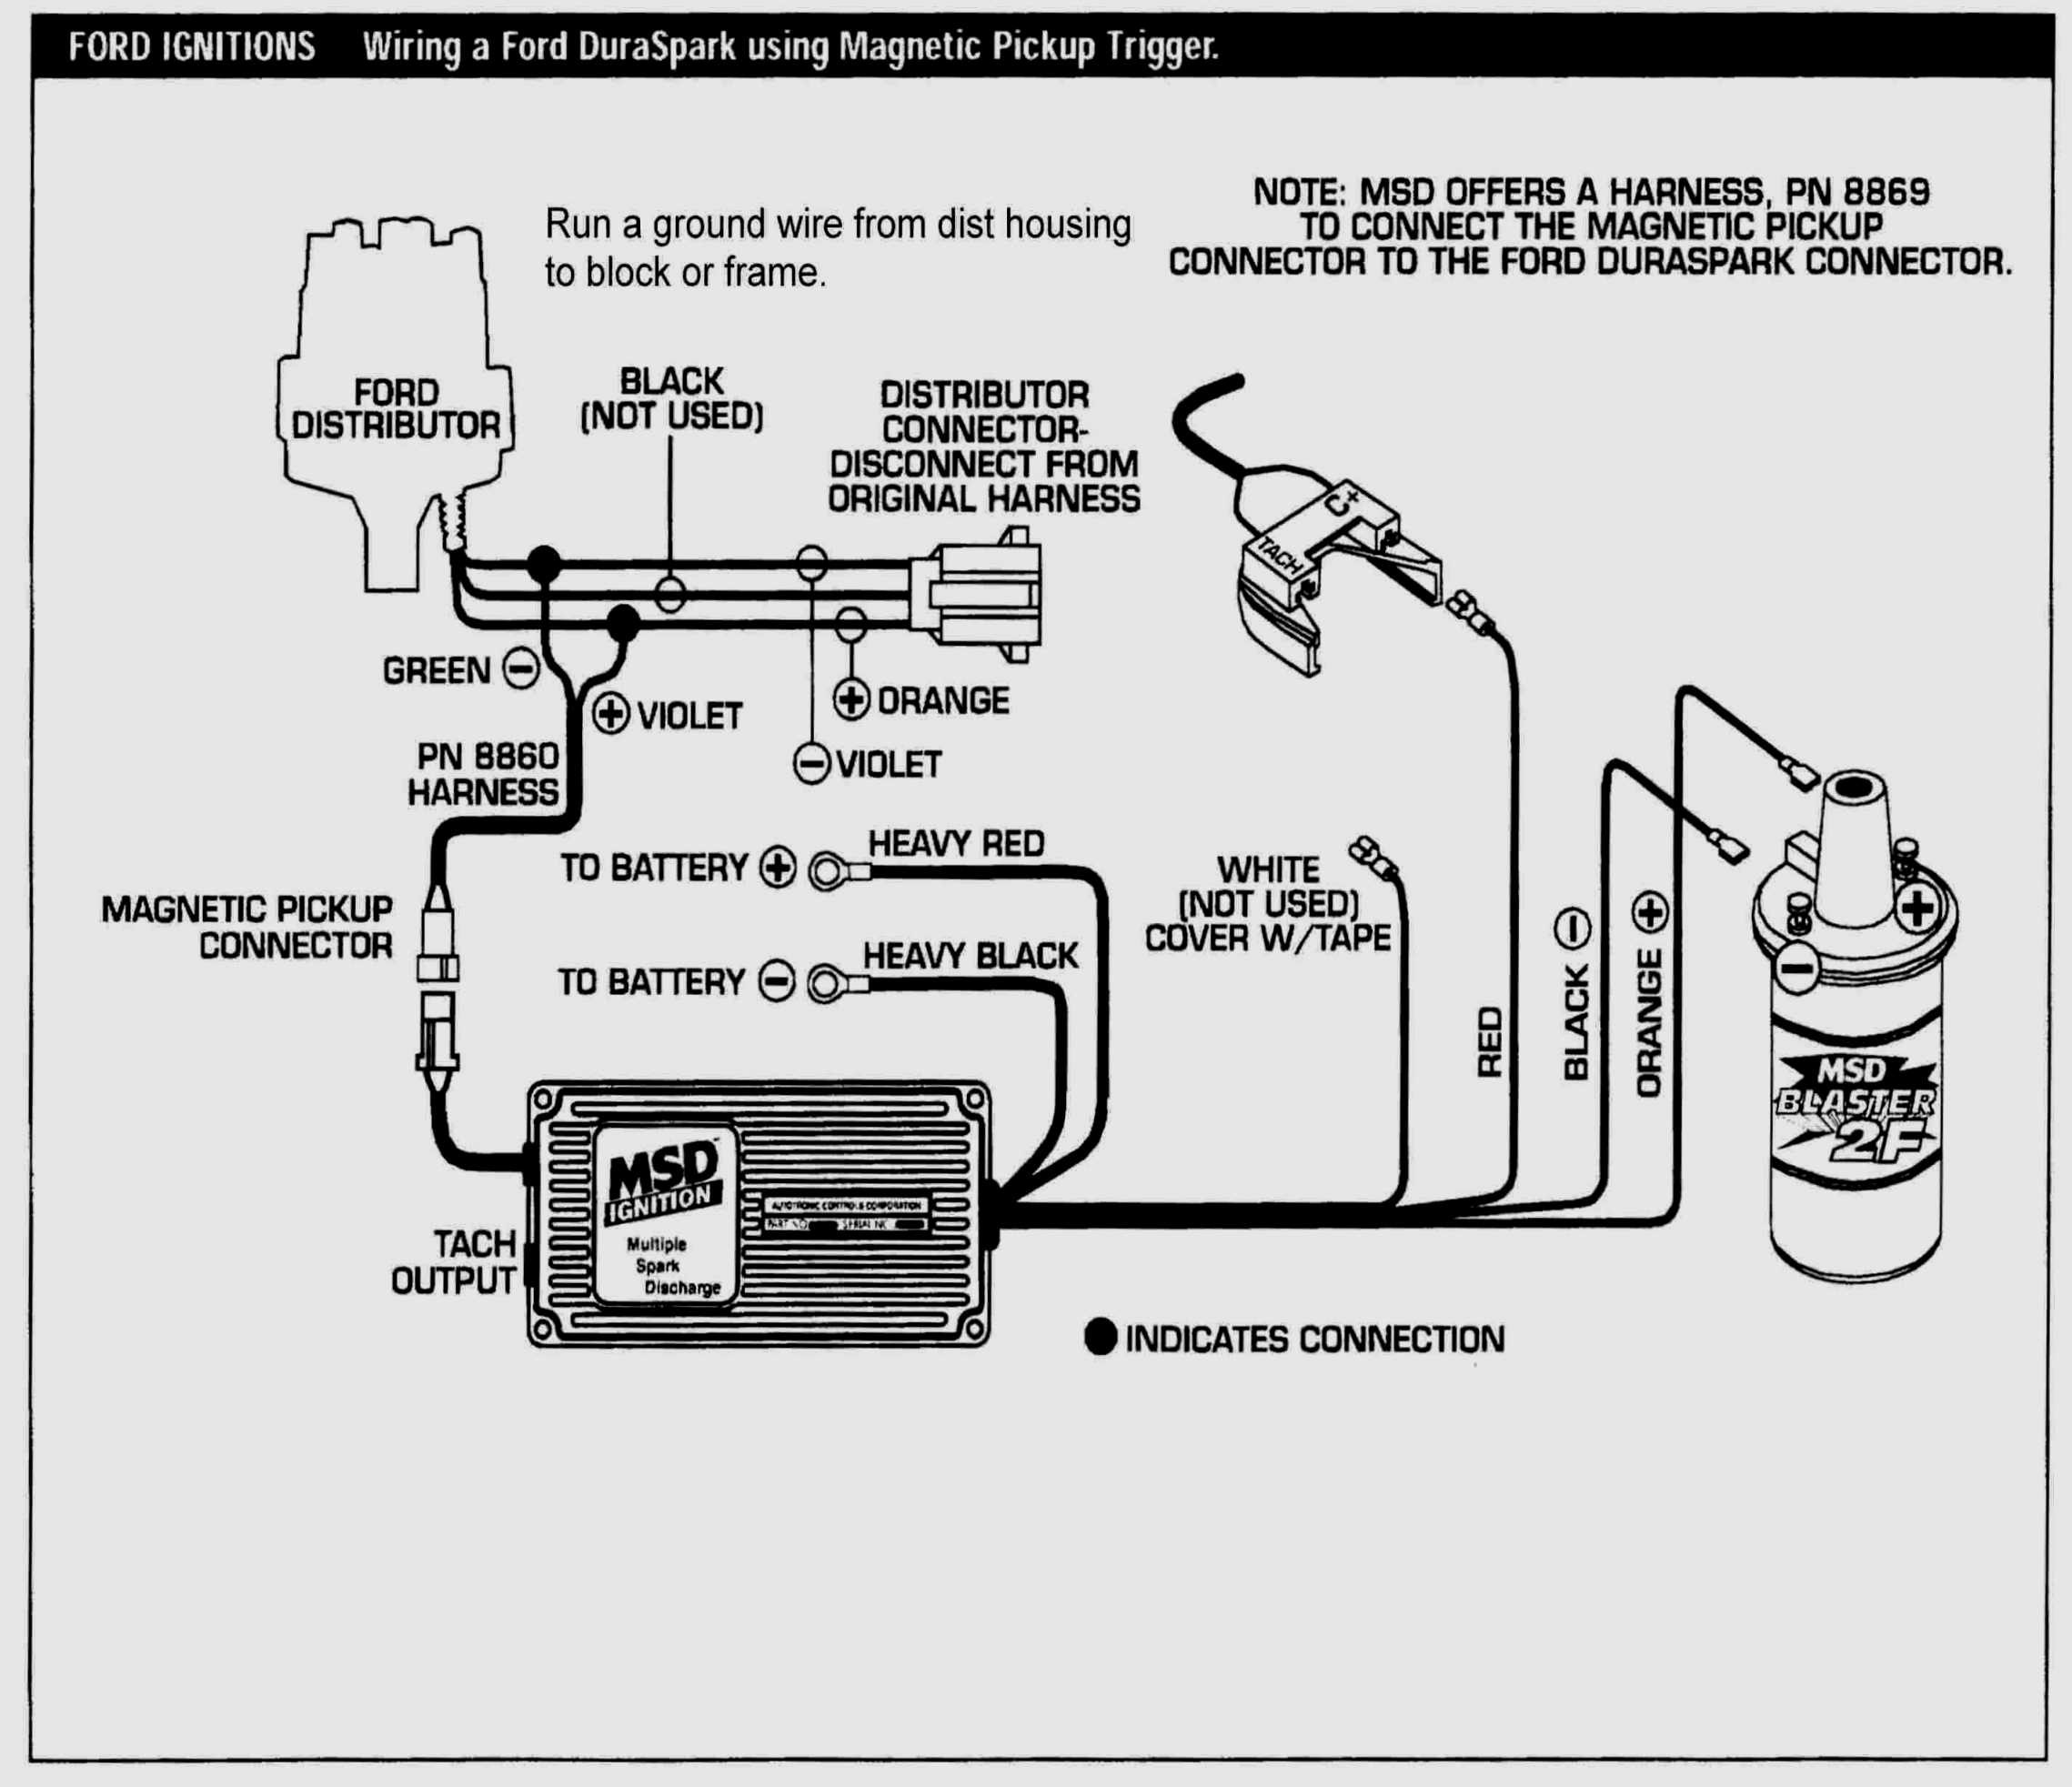 1986 Wire Digram ford Ignition Module Diagram] Nissan Wiring Diagram ford Ignition Control Module Of 1986 Wire Digram ford Ignition Module